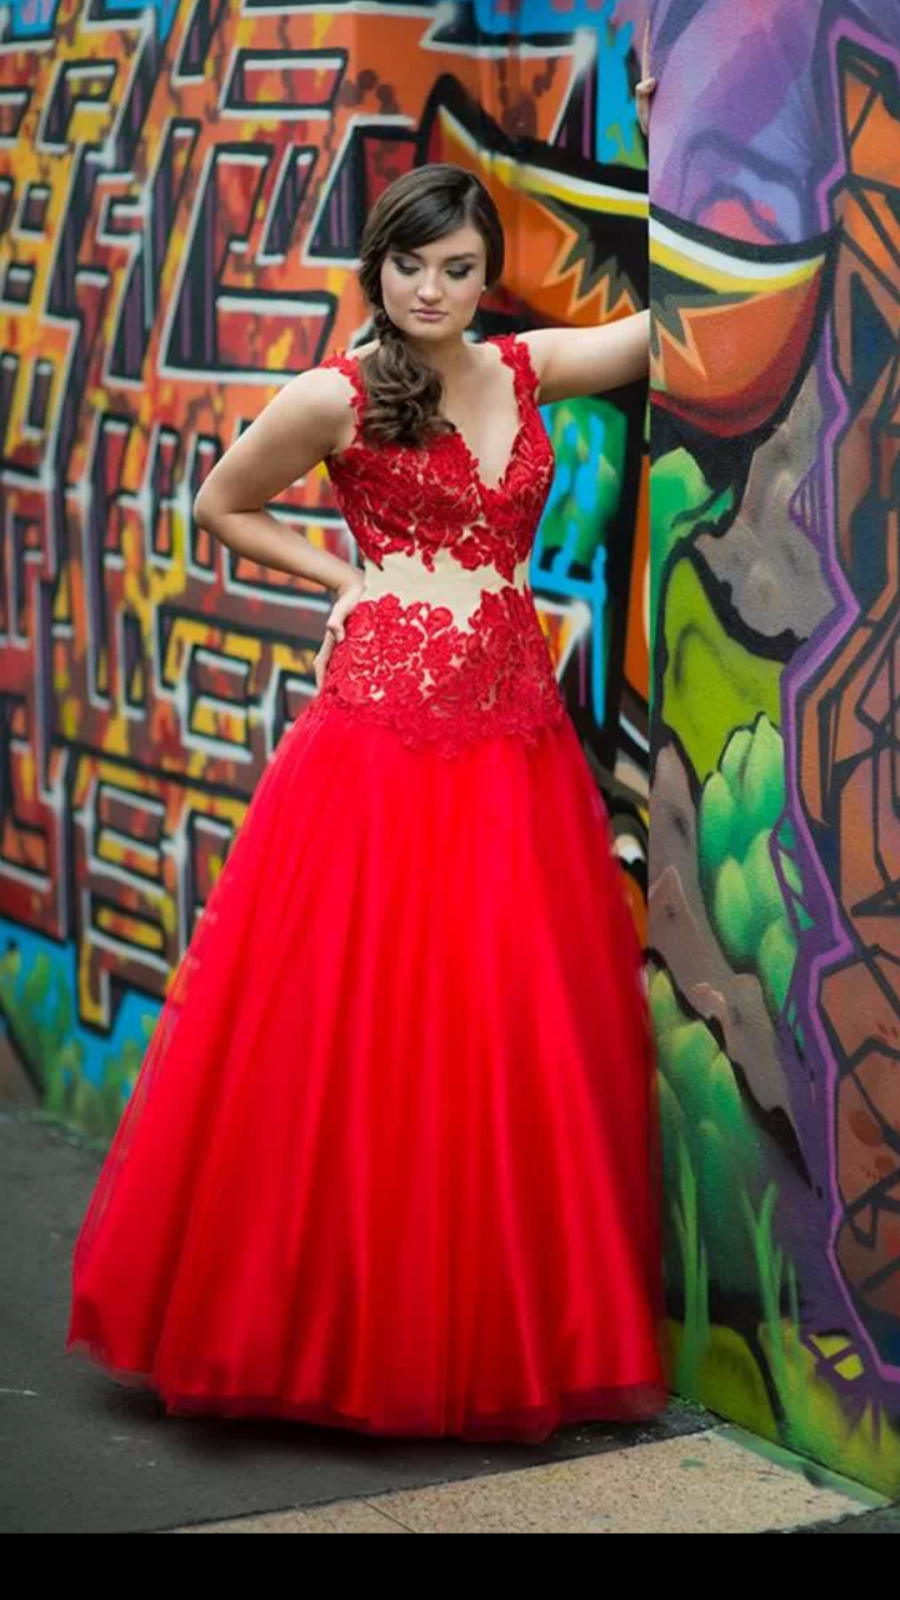 ... prom dresses by Spurlings Toowoomba and photography by Peter Rickards